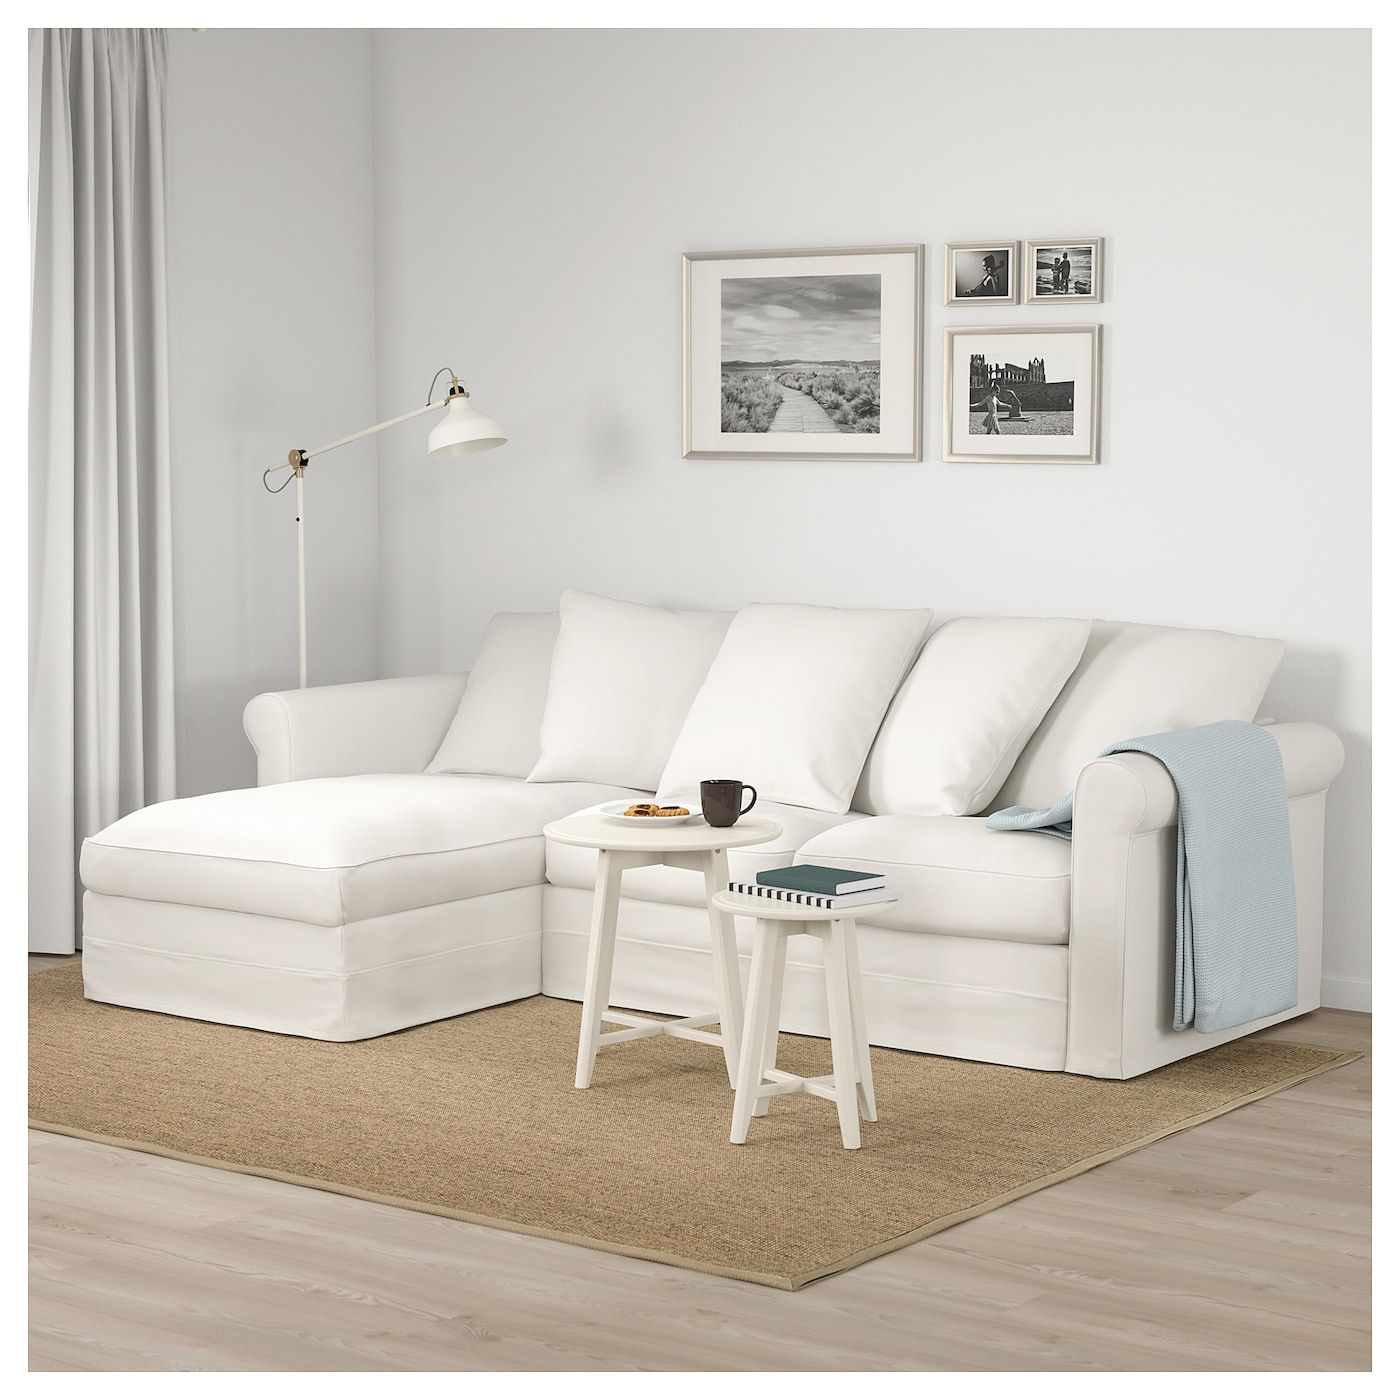 Gronlid Sofa With Chaise Inseros White Living Room Decor Inspiration Modern White Living Room Sofa